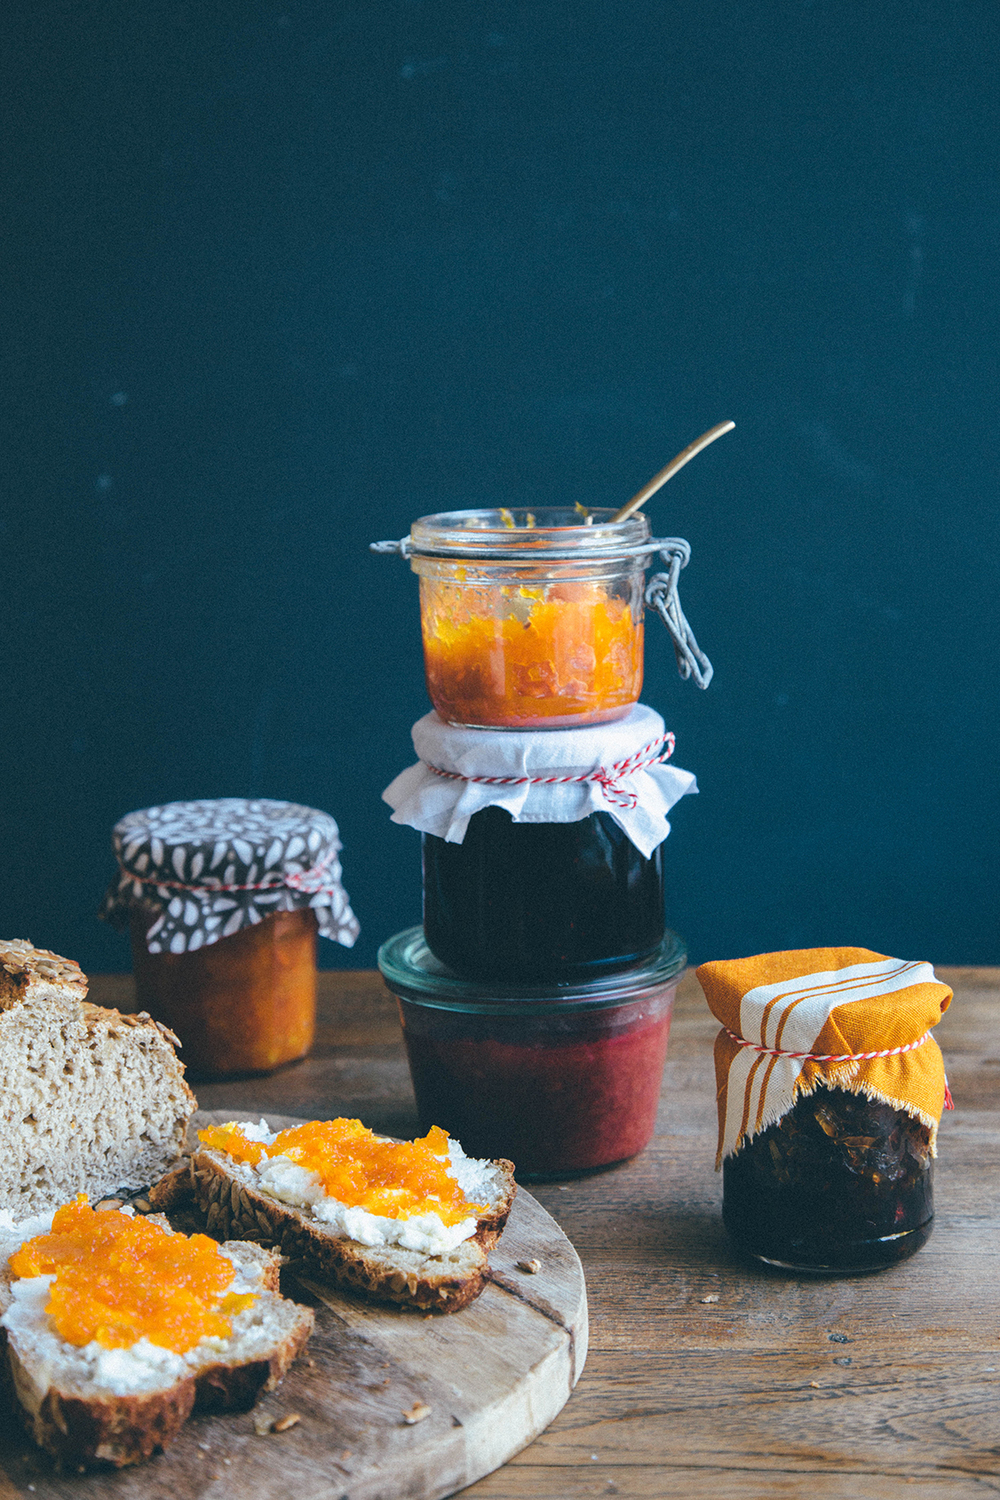 Cheese and jam - a perfect match.